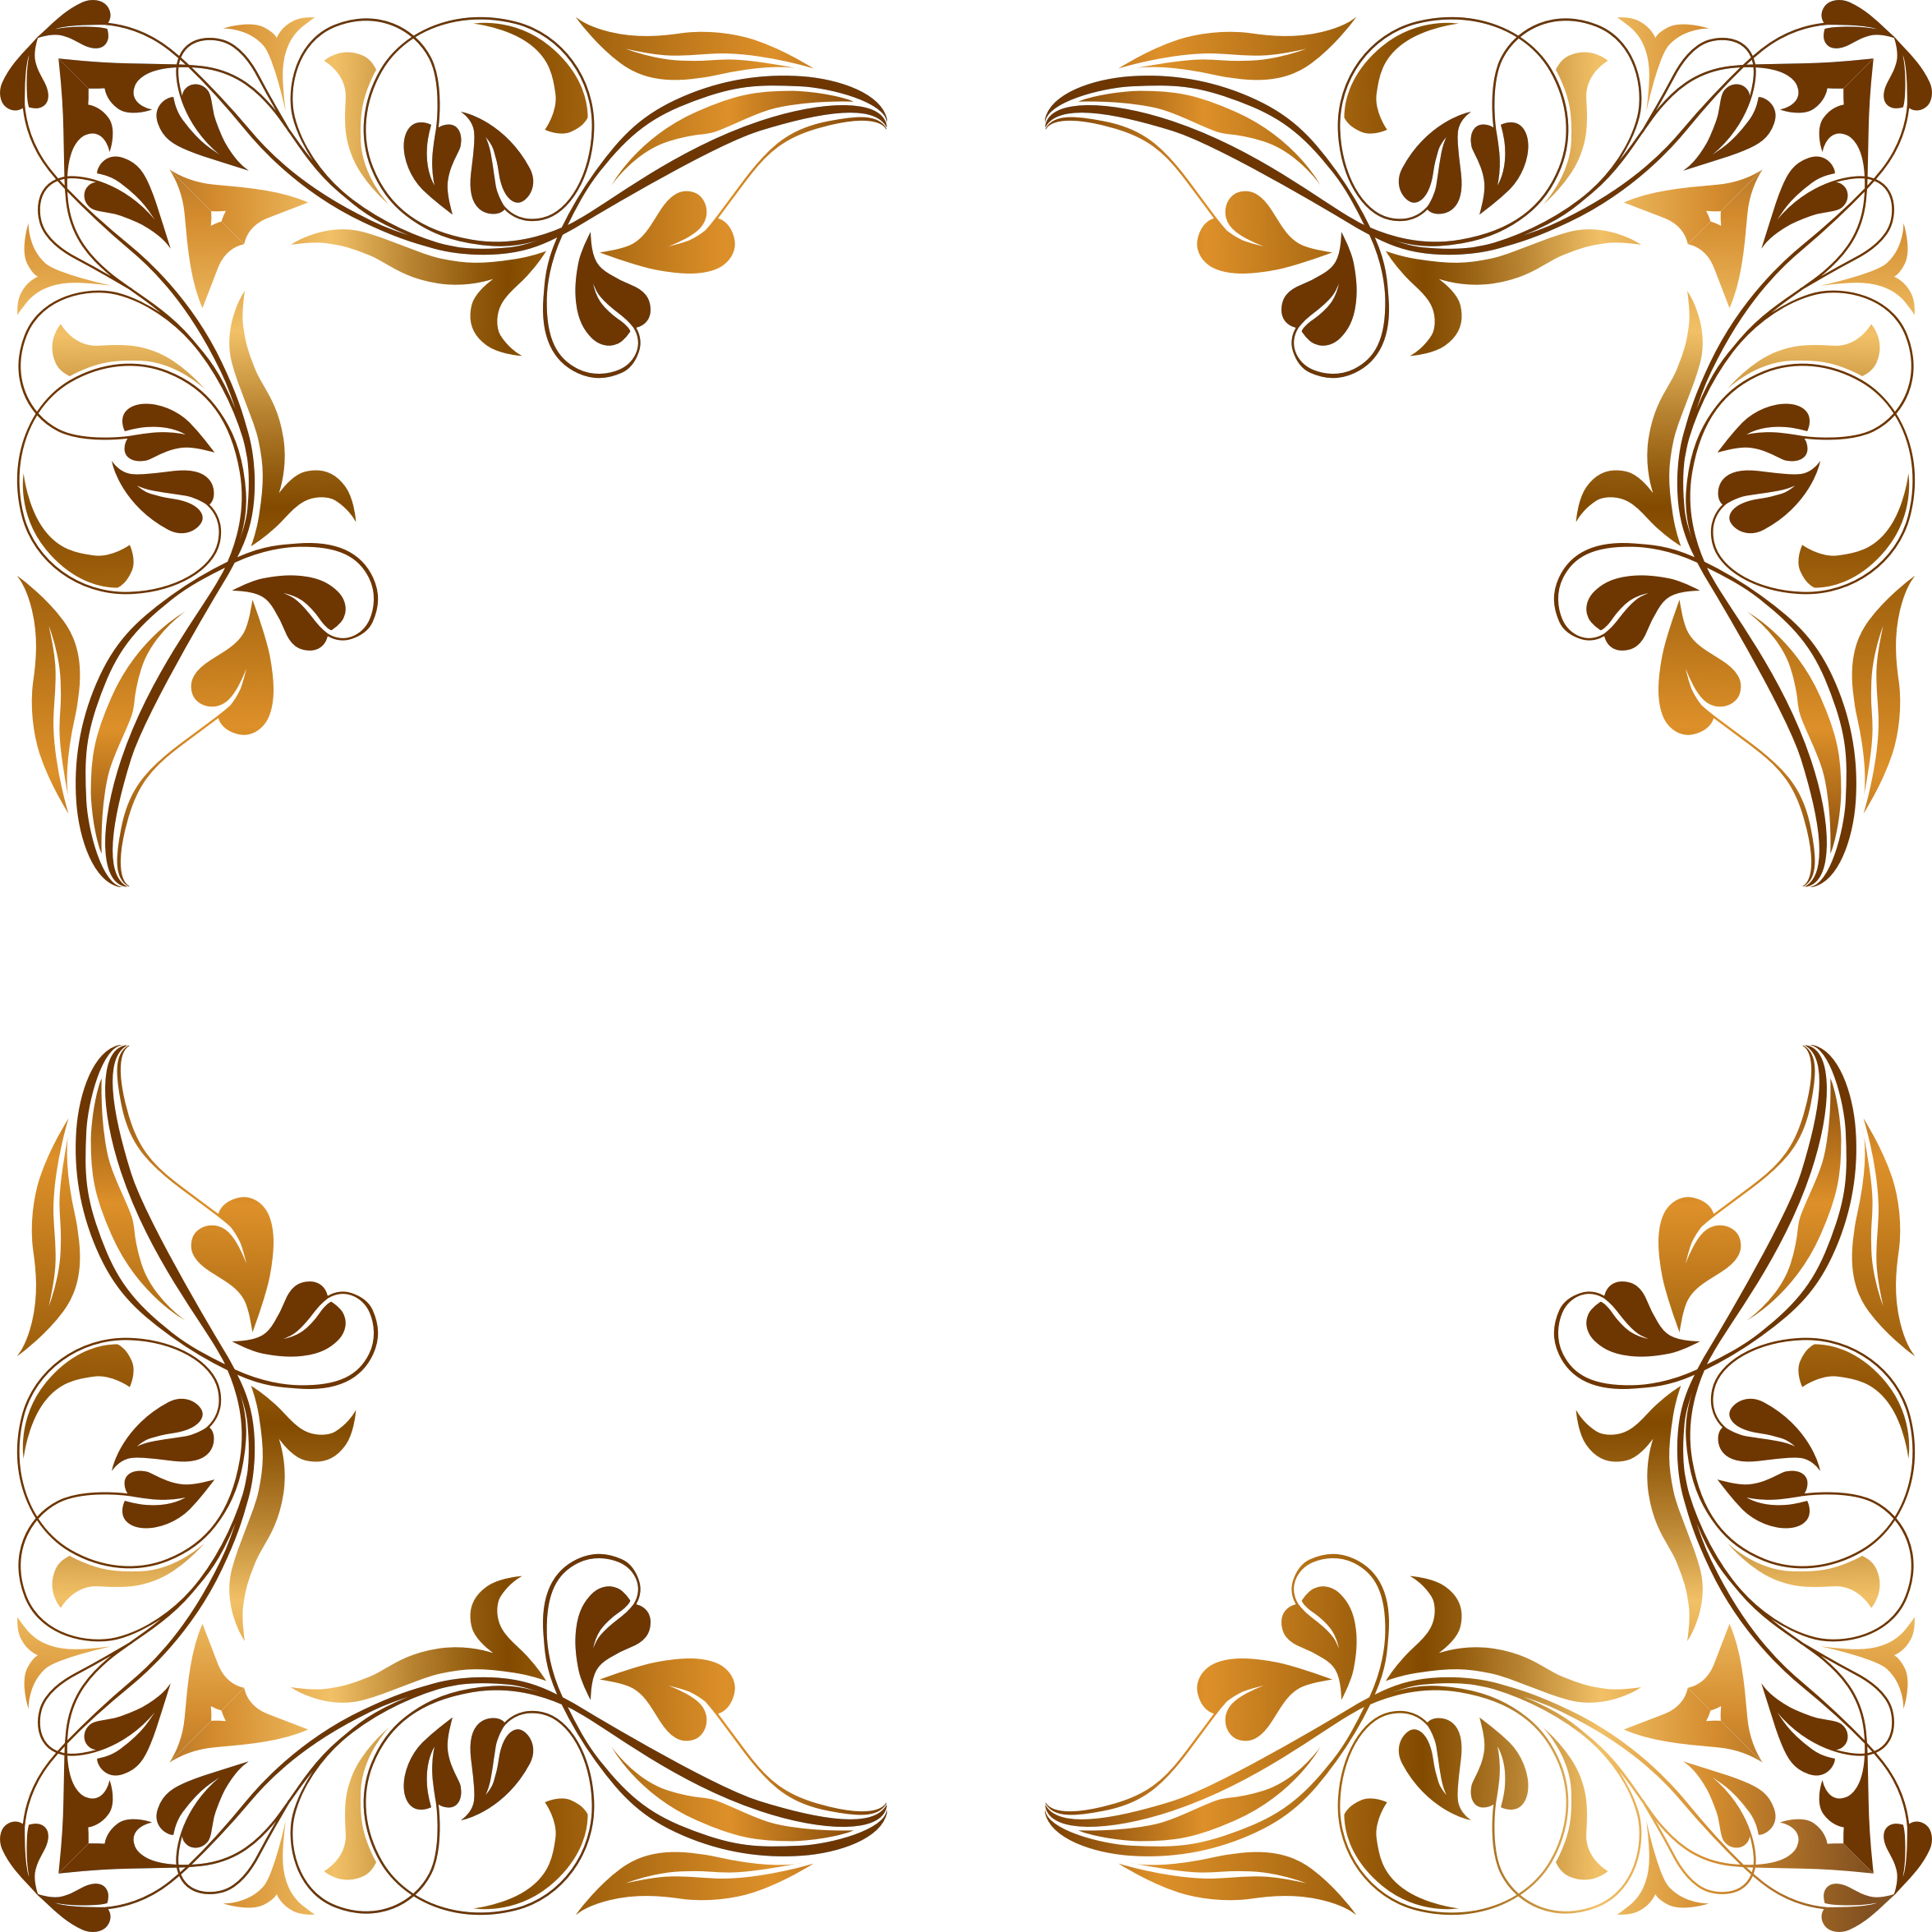 Floral Flourish Frame 5 by GDJ